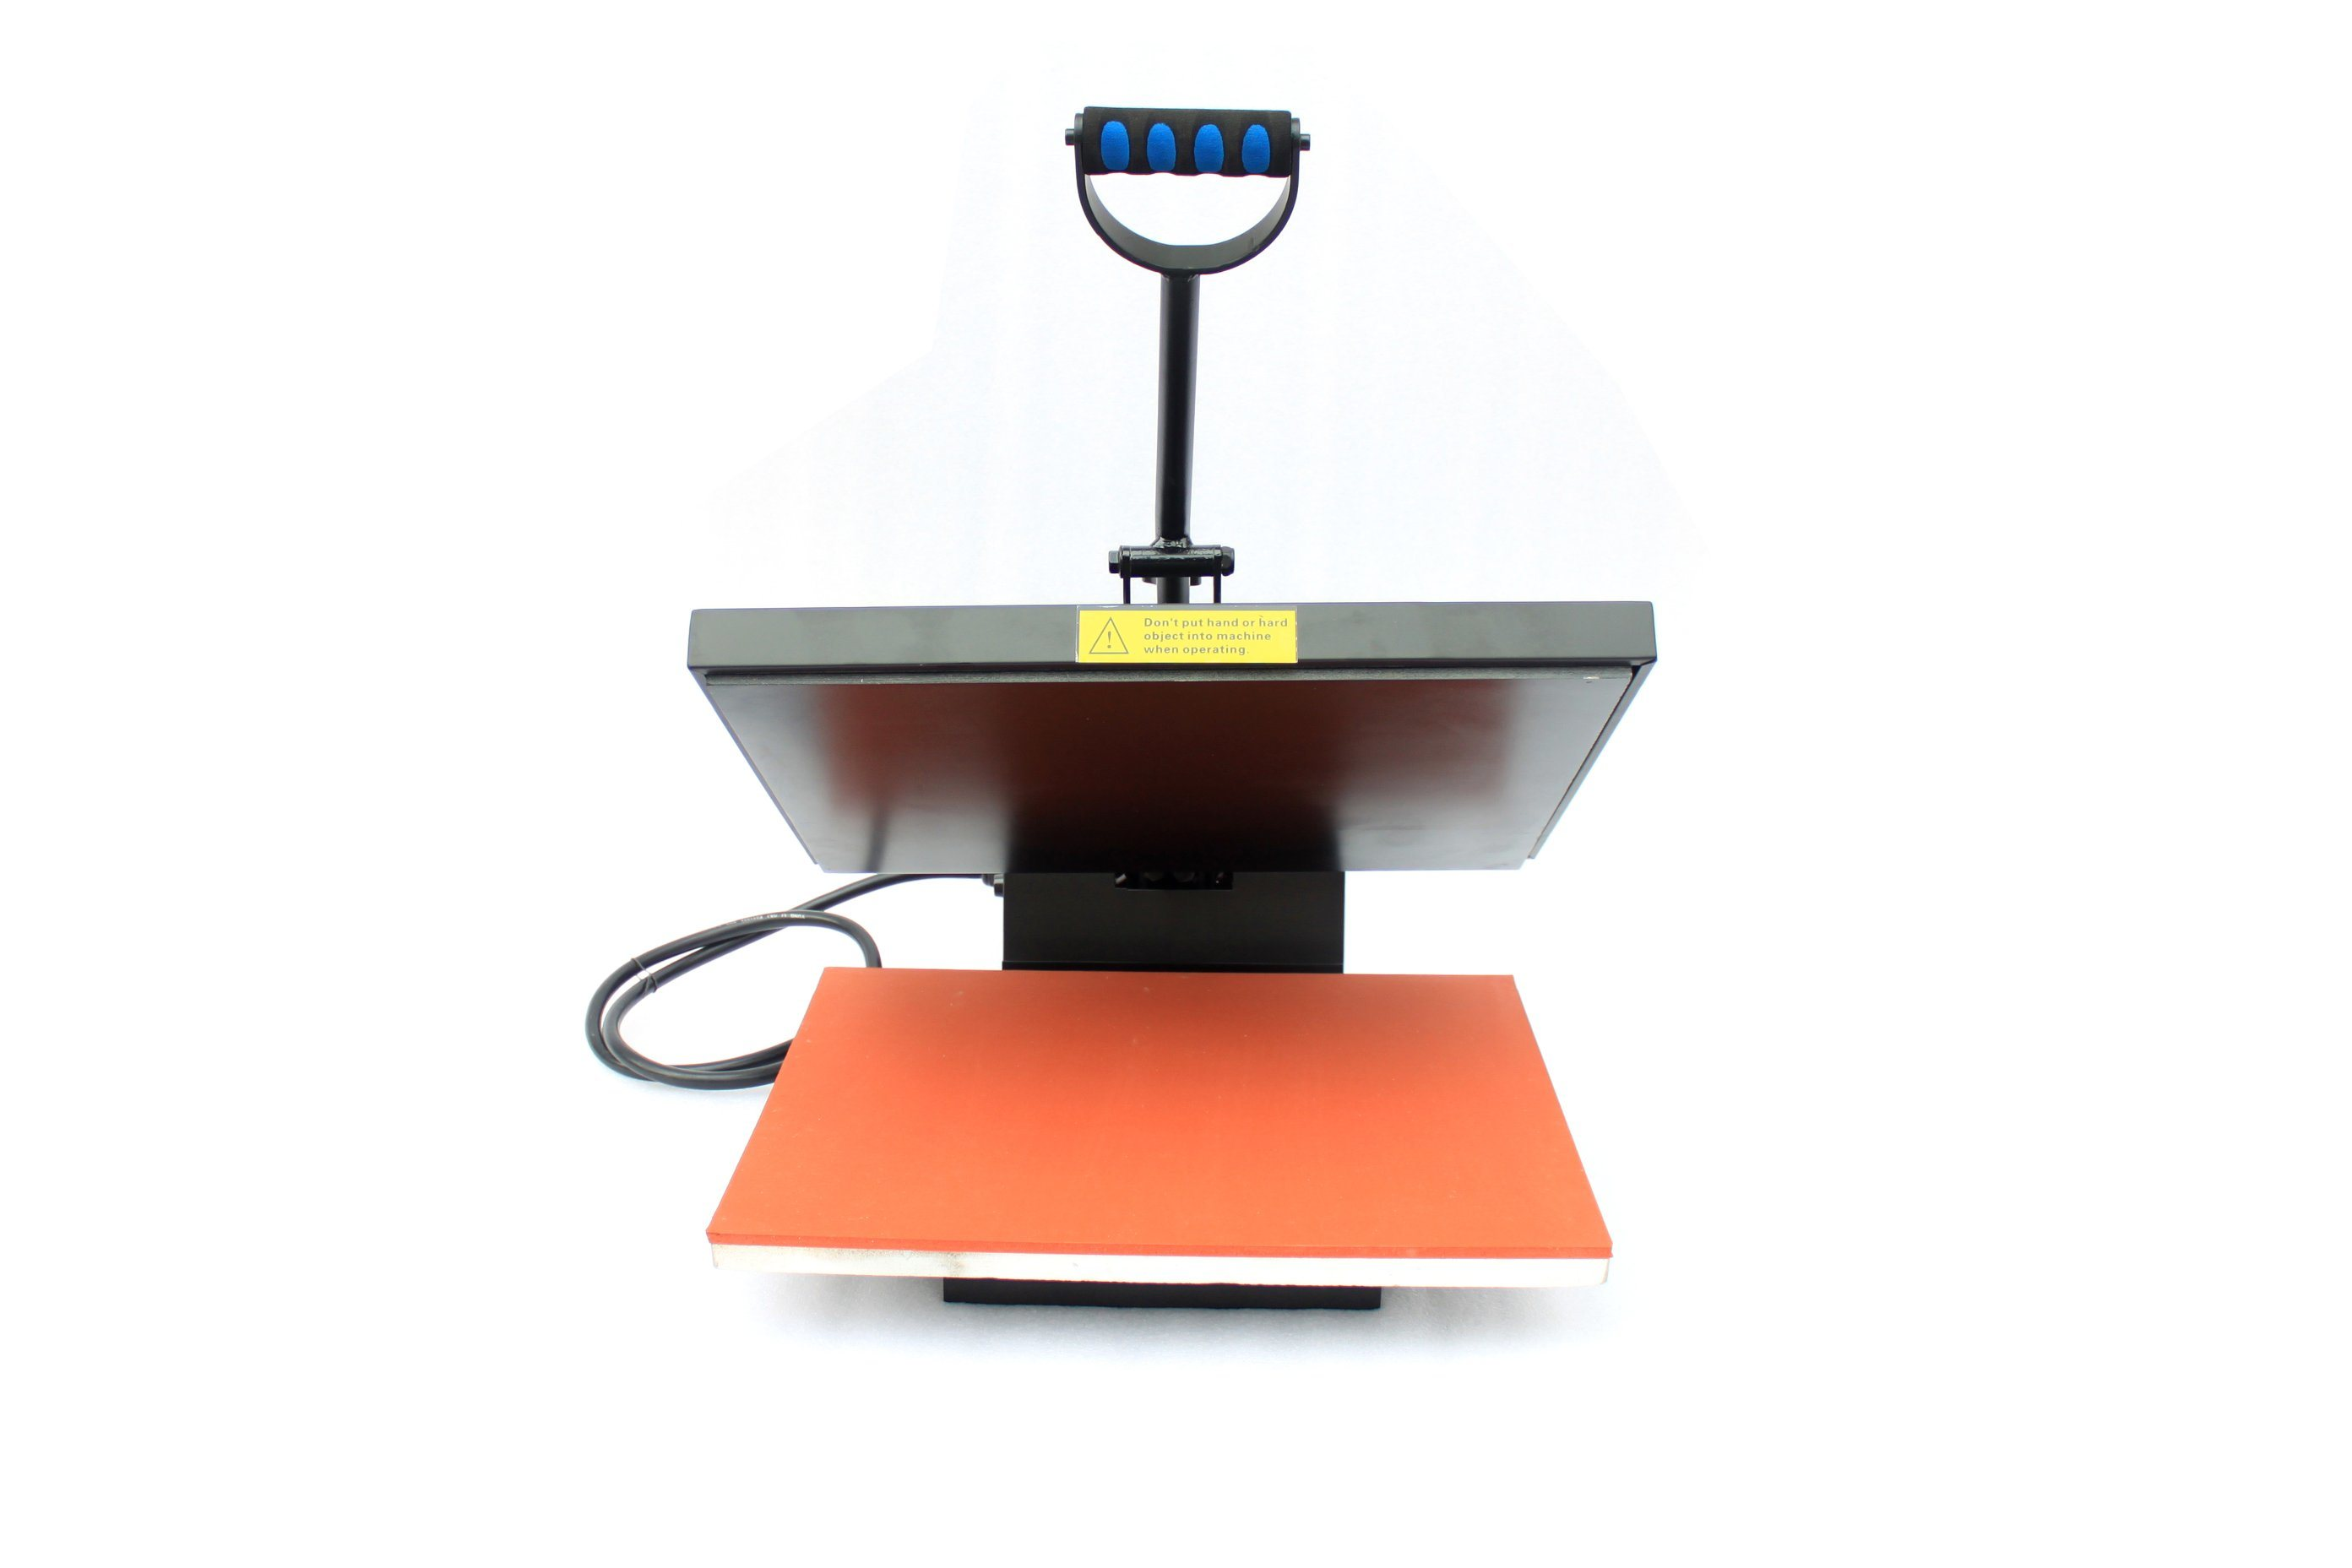 T Shirt Printer Cost In India